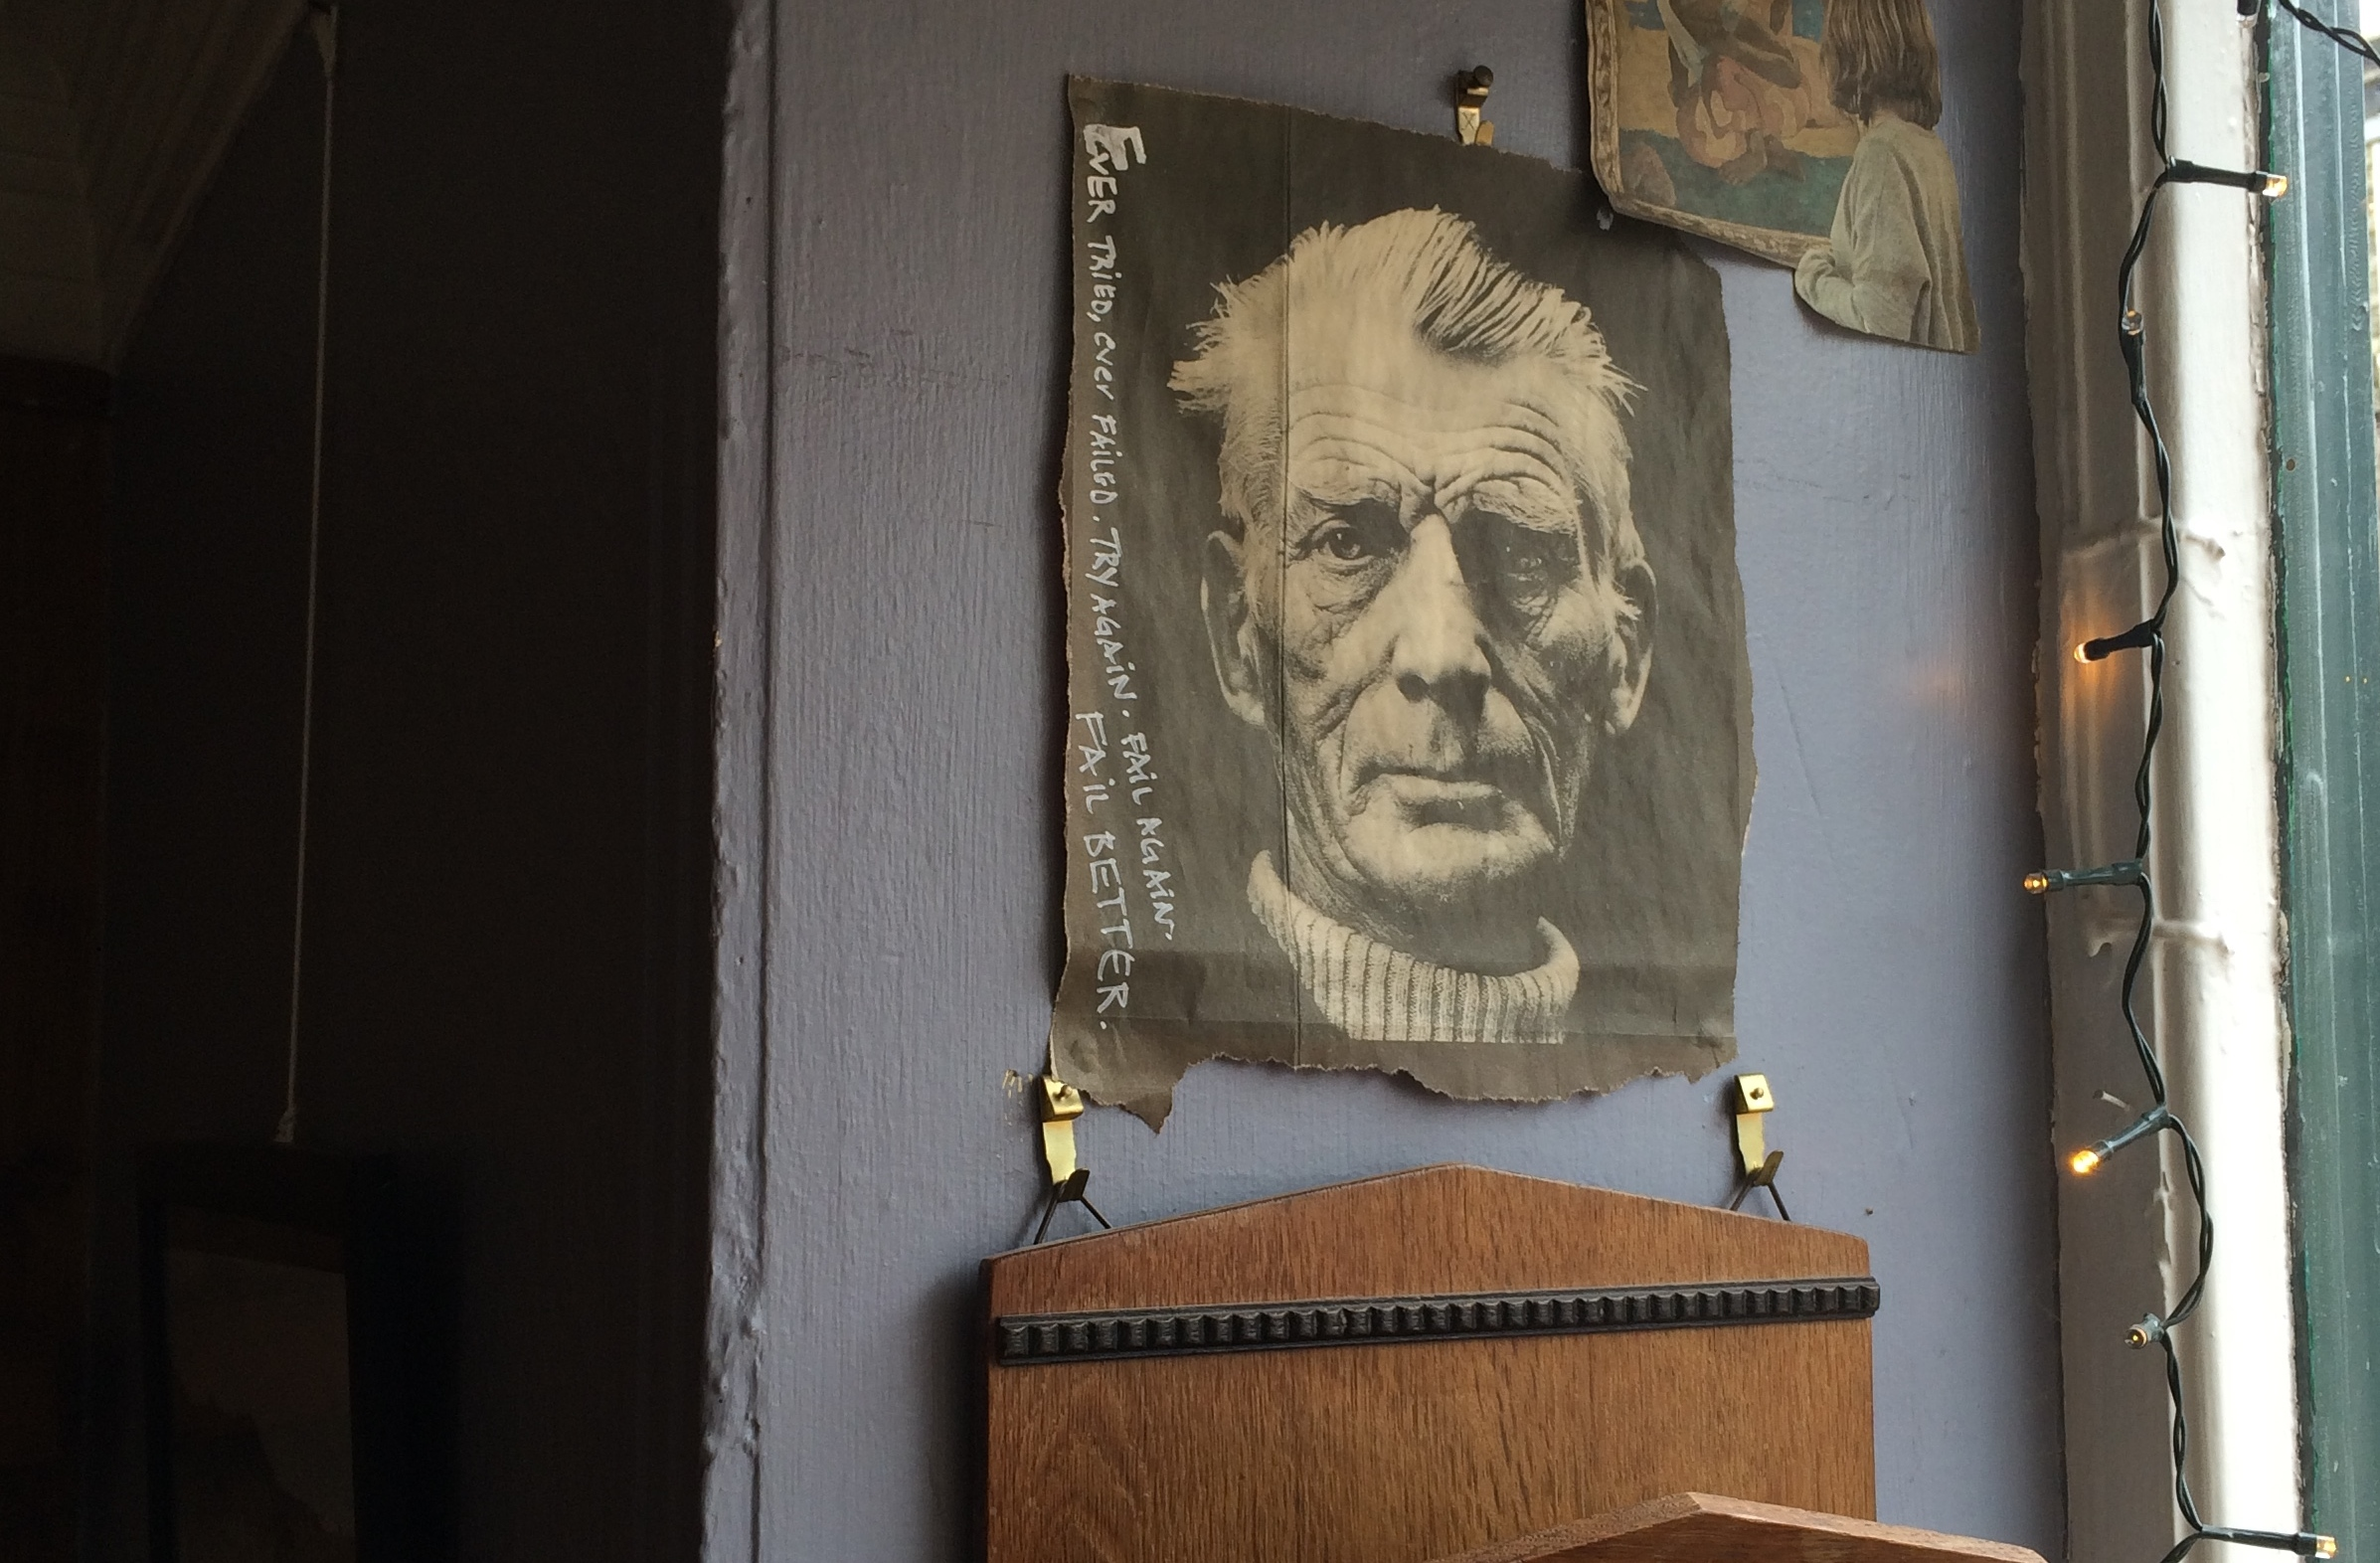 Beckett, the Colonel Sanders of the St. Andrews coffee scene, opened the business in 1980 whilst alive